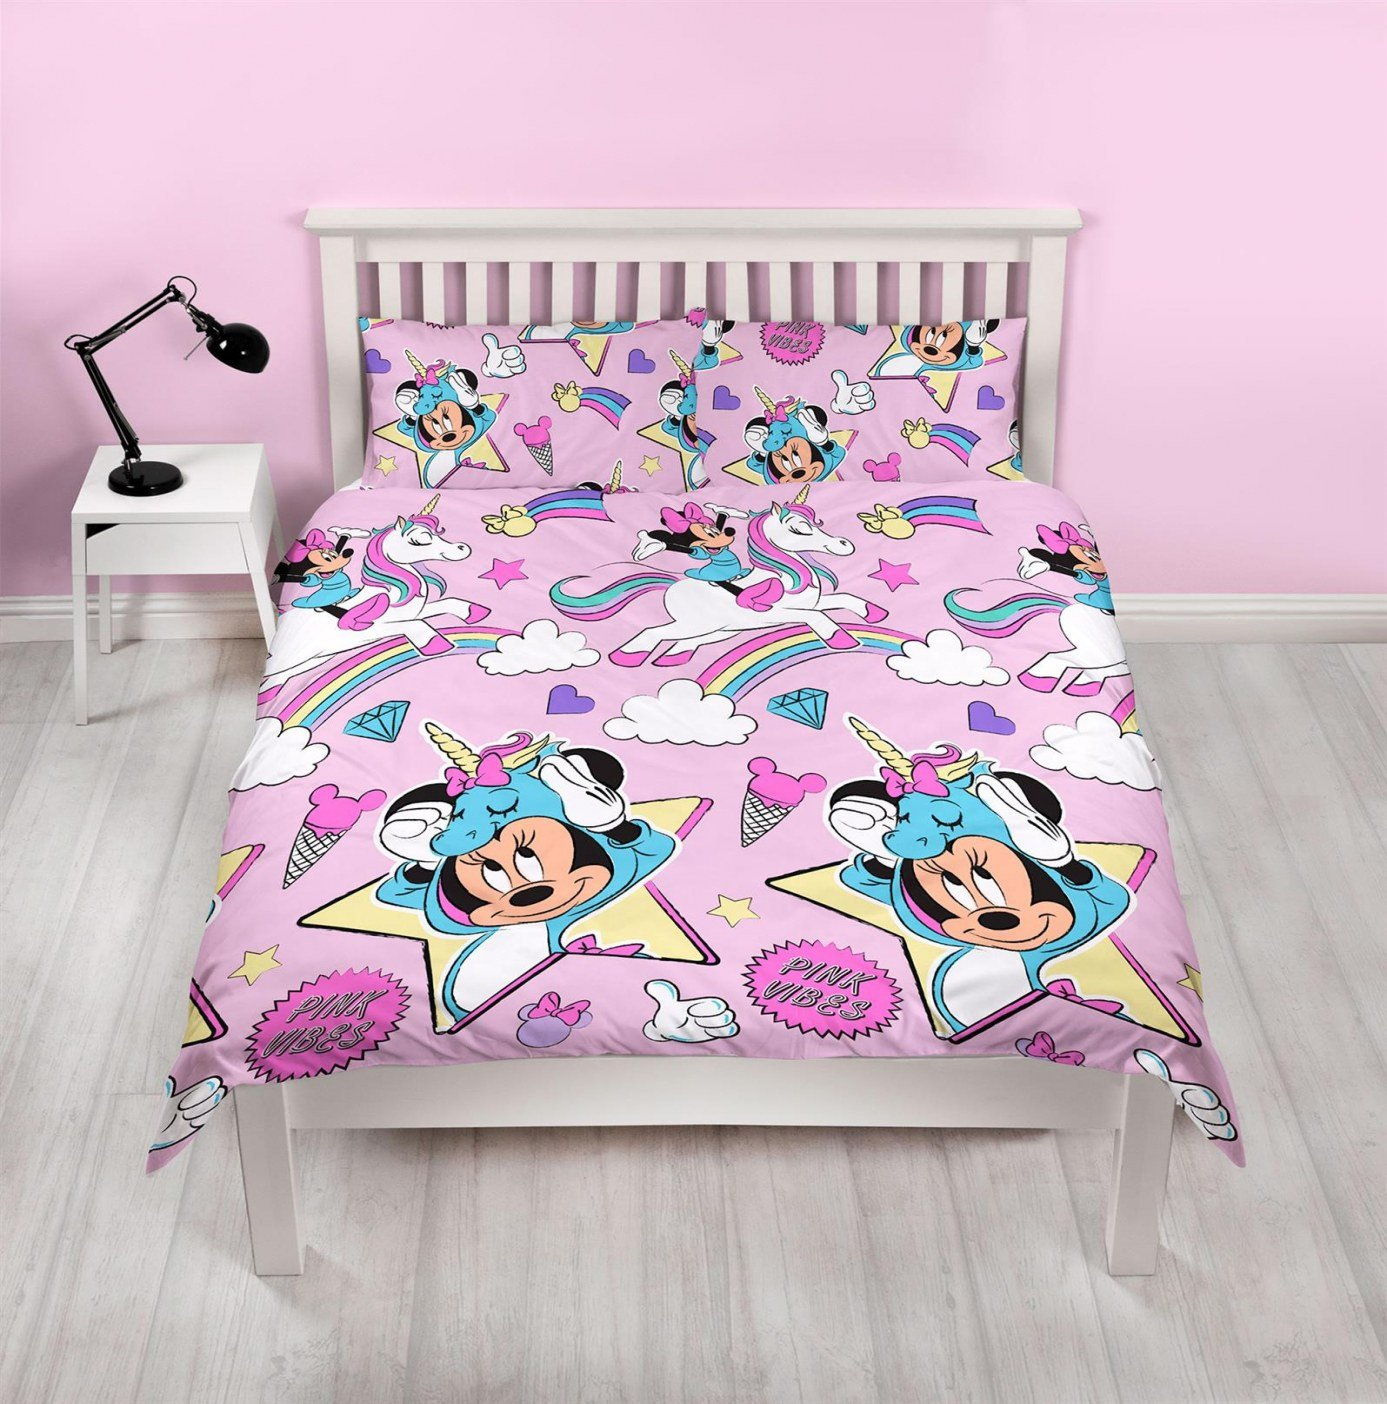 Minnie Mouse Bedroom Set Lovely Minnie Mouse Room In A Box Details About Disney Mickey